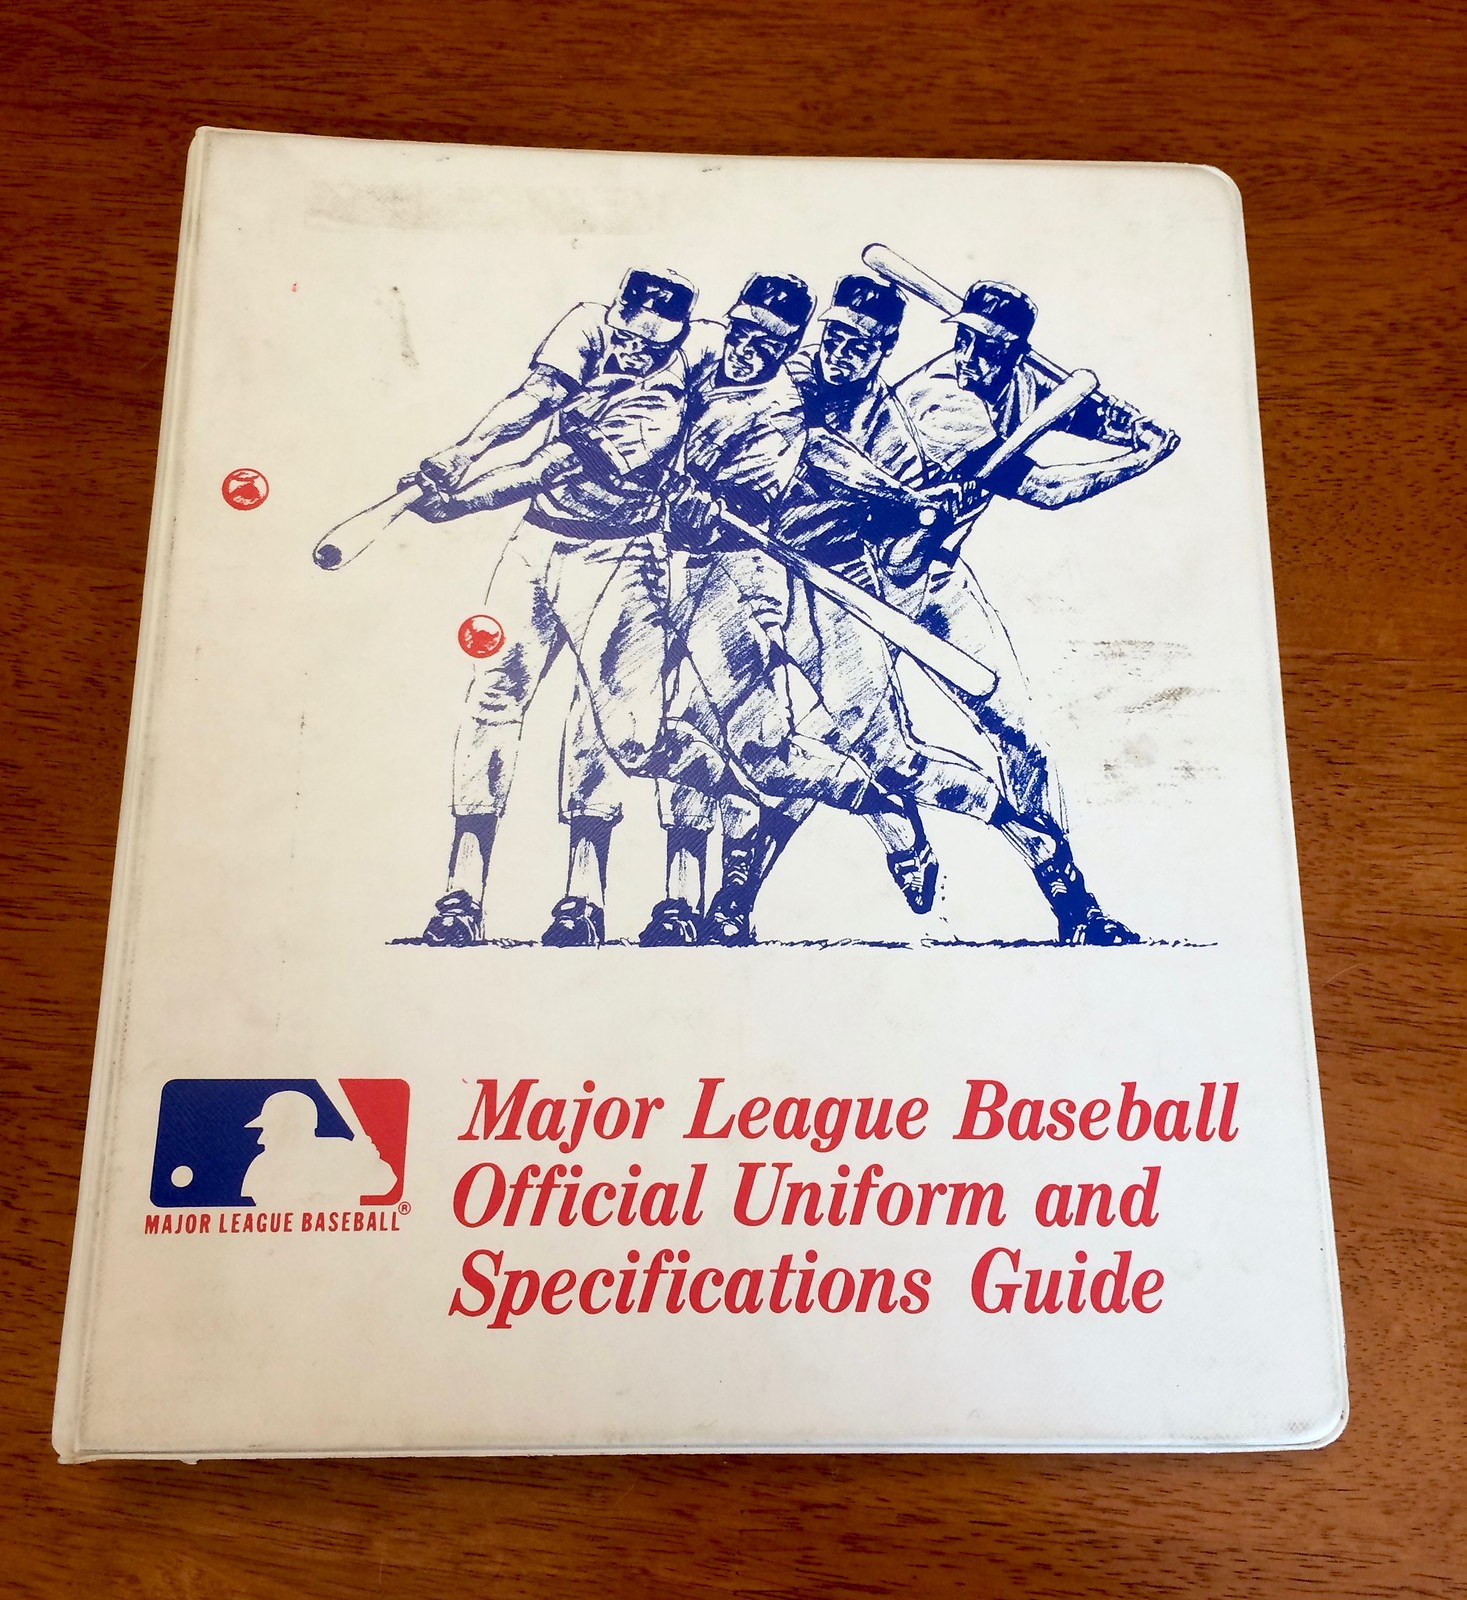 7689911c The guide was produced by the Licensing Corporation of America (LCA), which  oversaw MLB's licensing operations from 1966 through 1987.